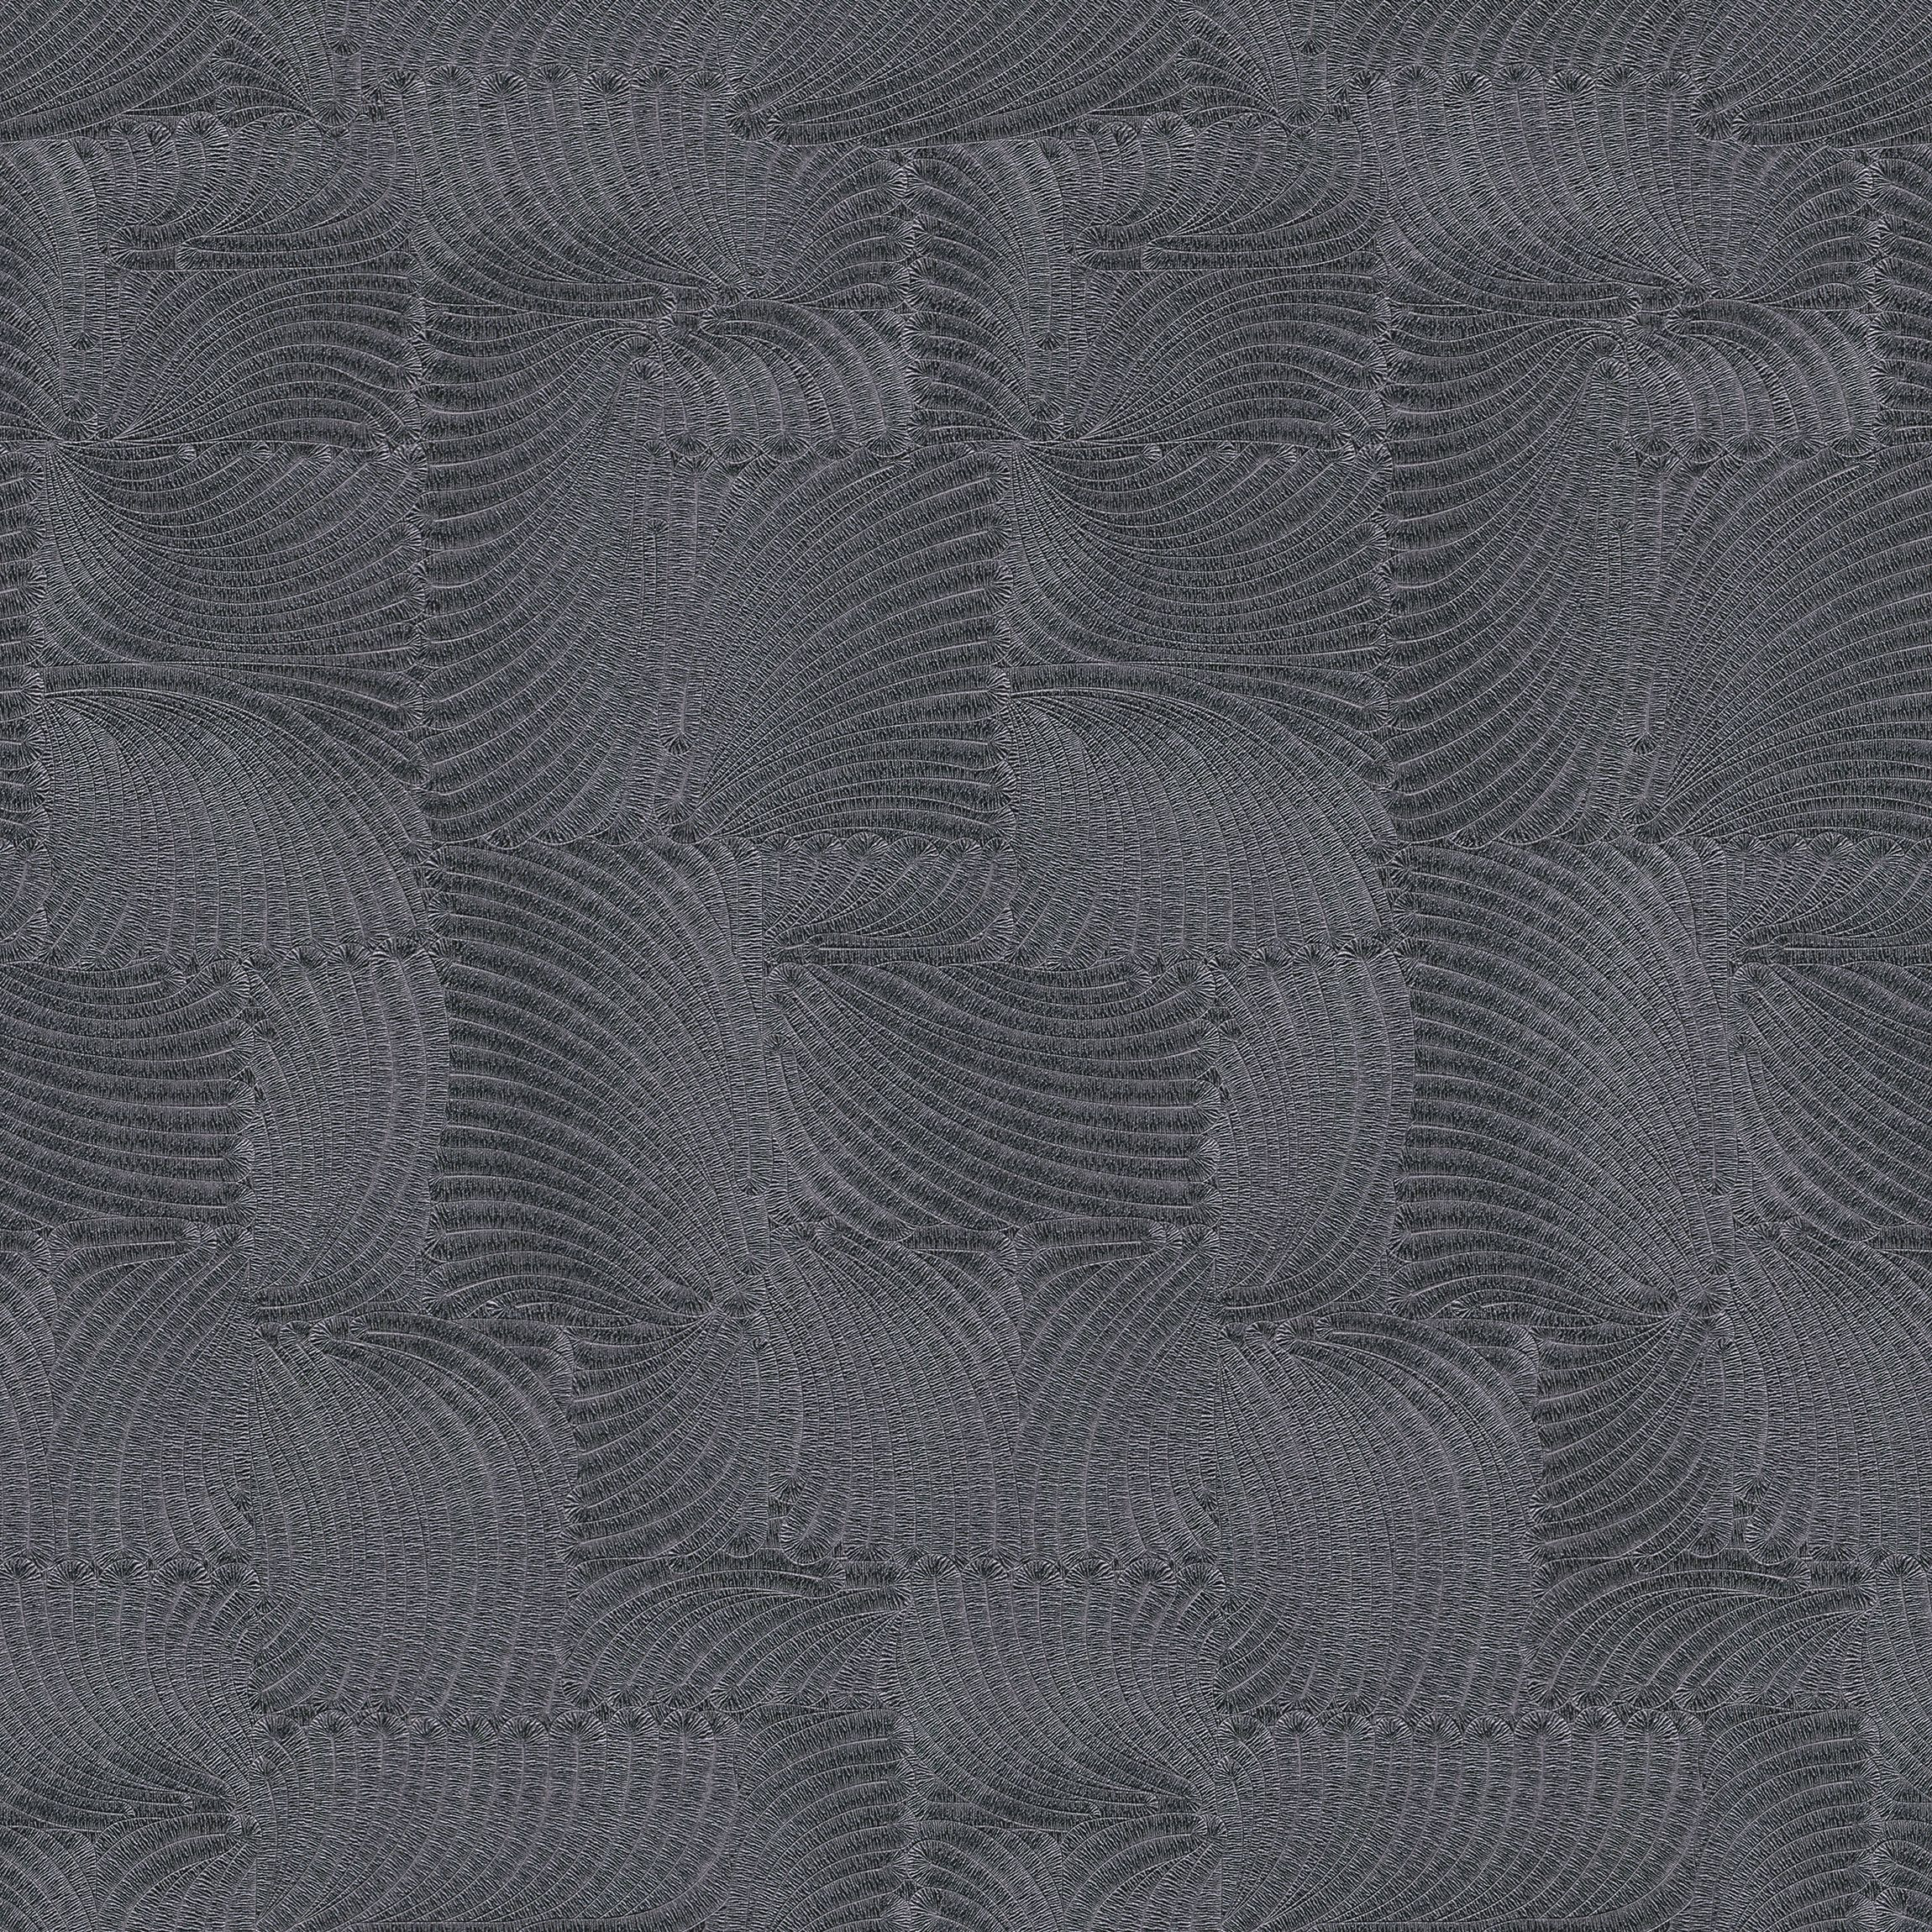 Tapetti Fashion for Walls II  V 02480 - 70, 0.53x10.05 m, musta, non-woven